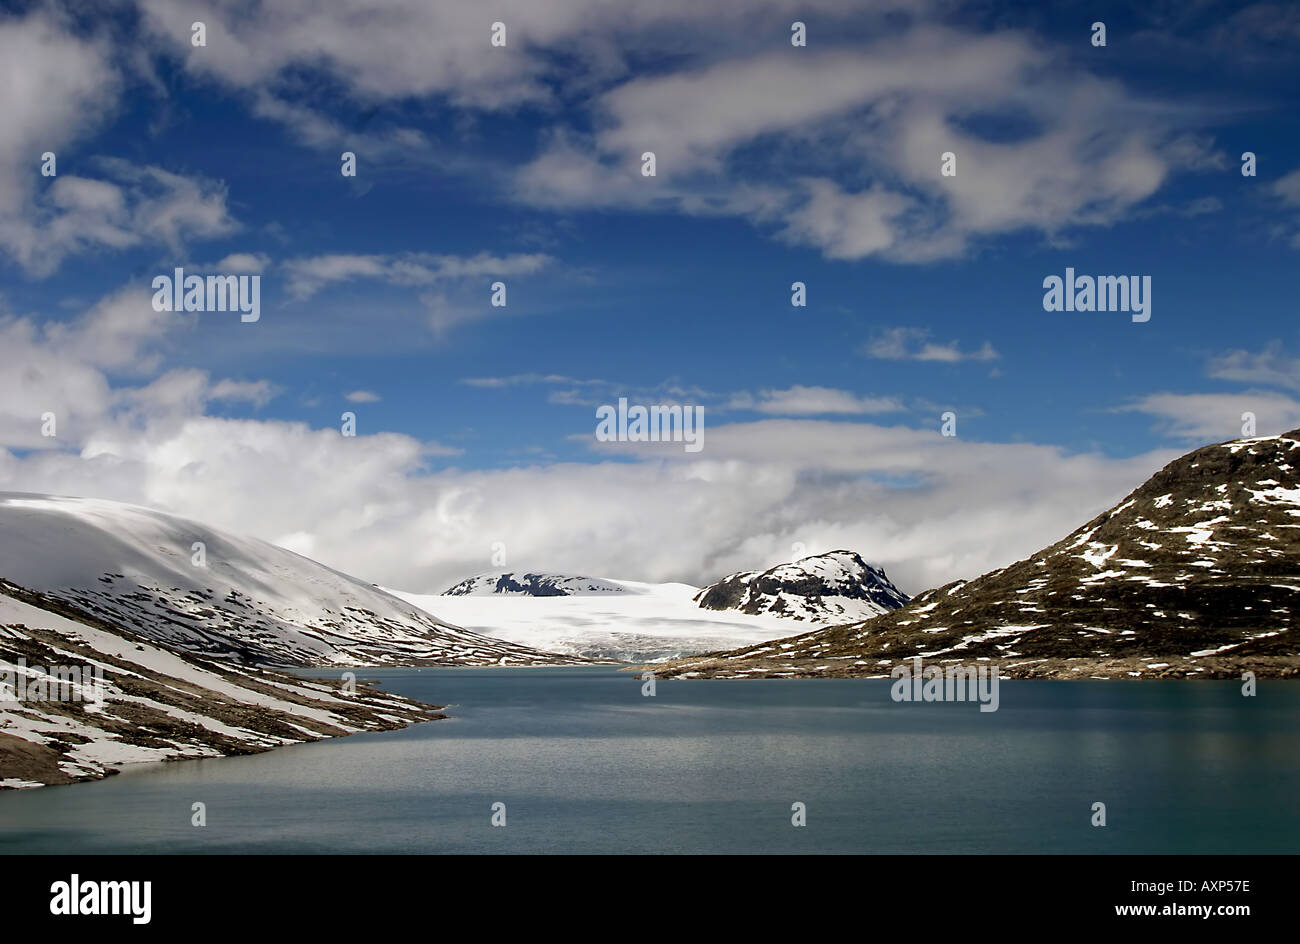 Lake at the Jostedals Glacier, Norway. - Stock Image